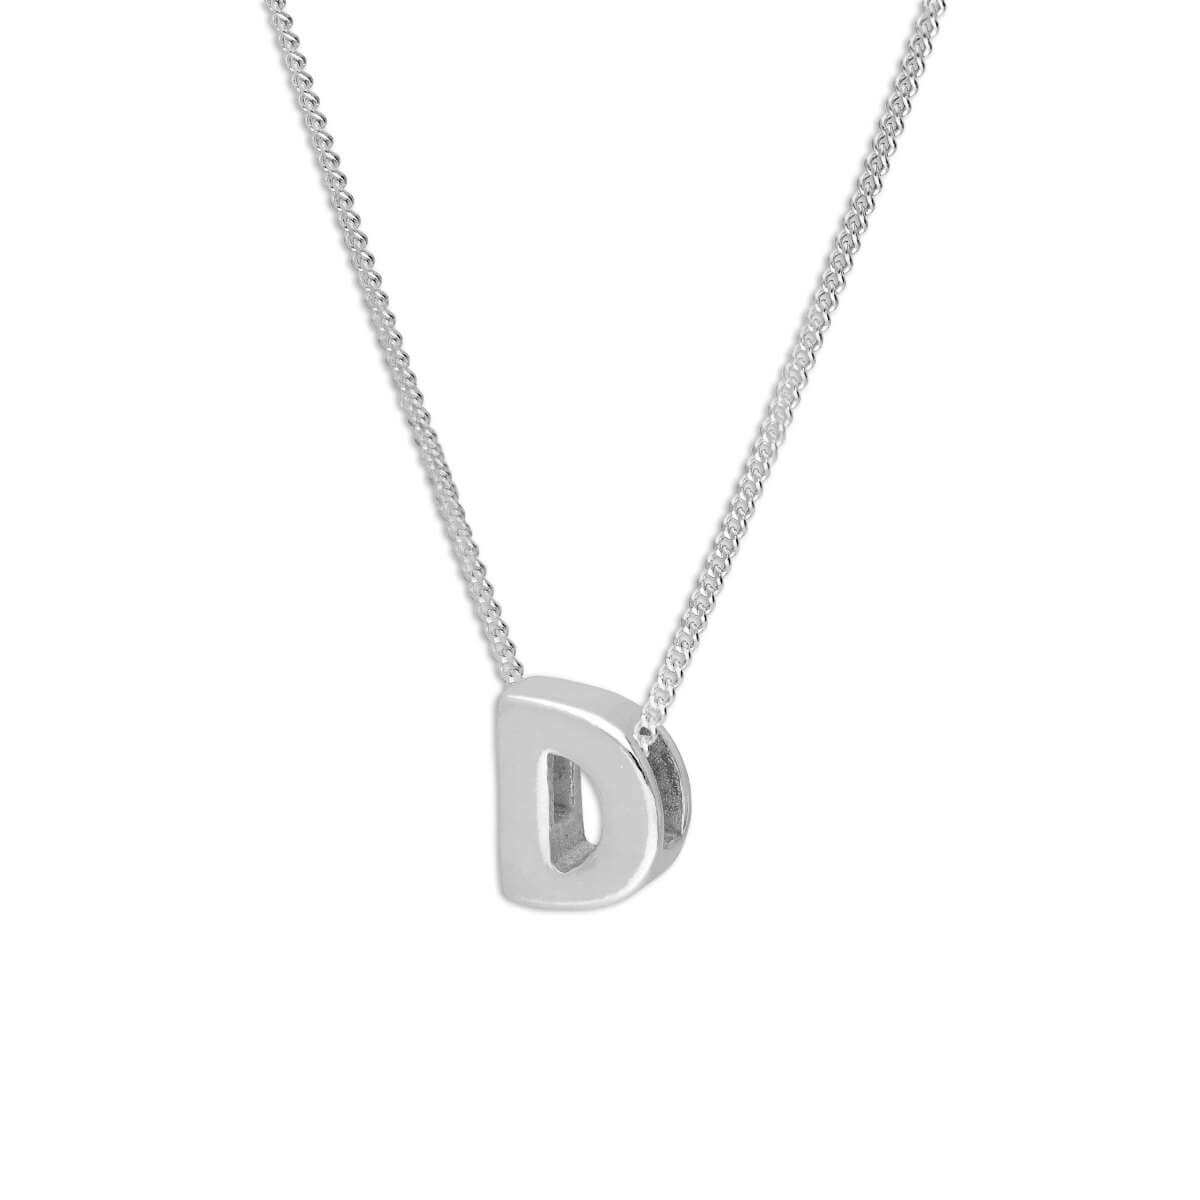 Sterling Silver Alphabet Letter Threader Bead 16+2 Inch Necklace D